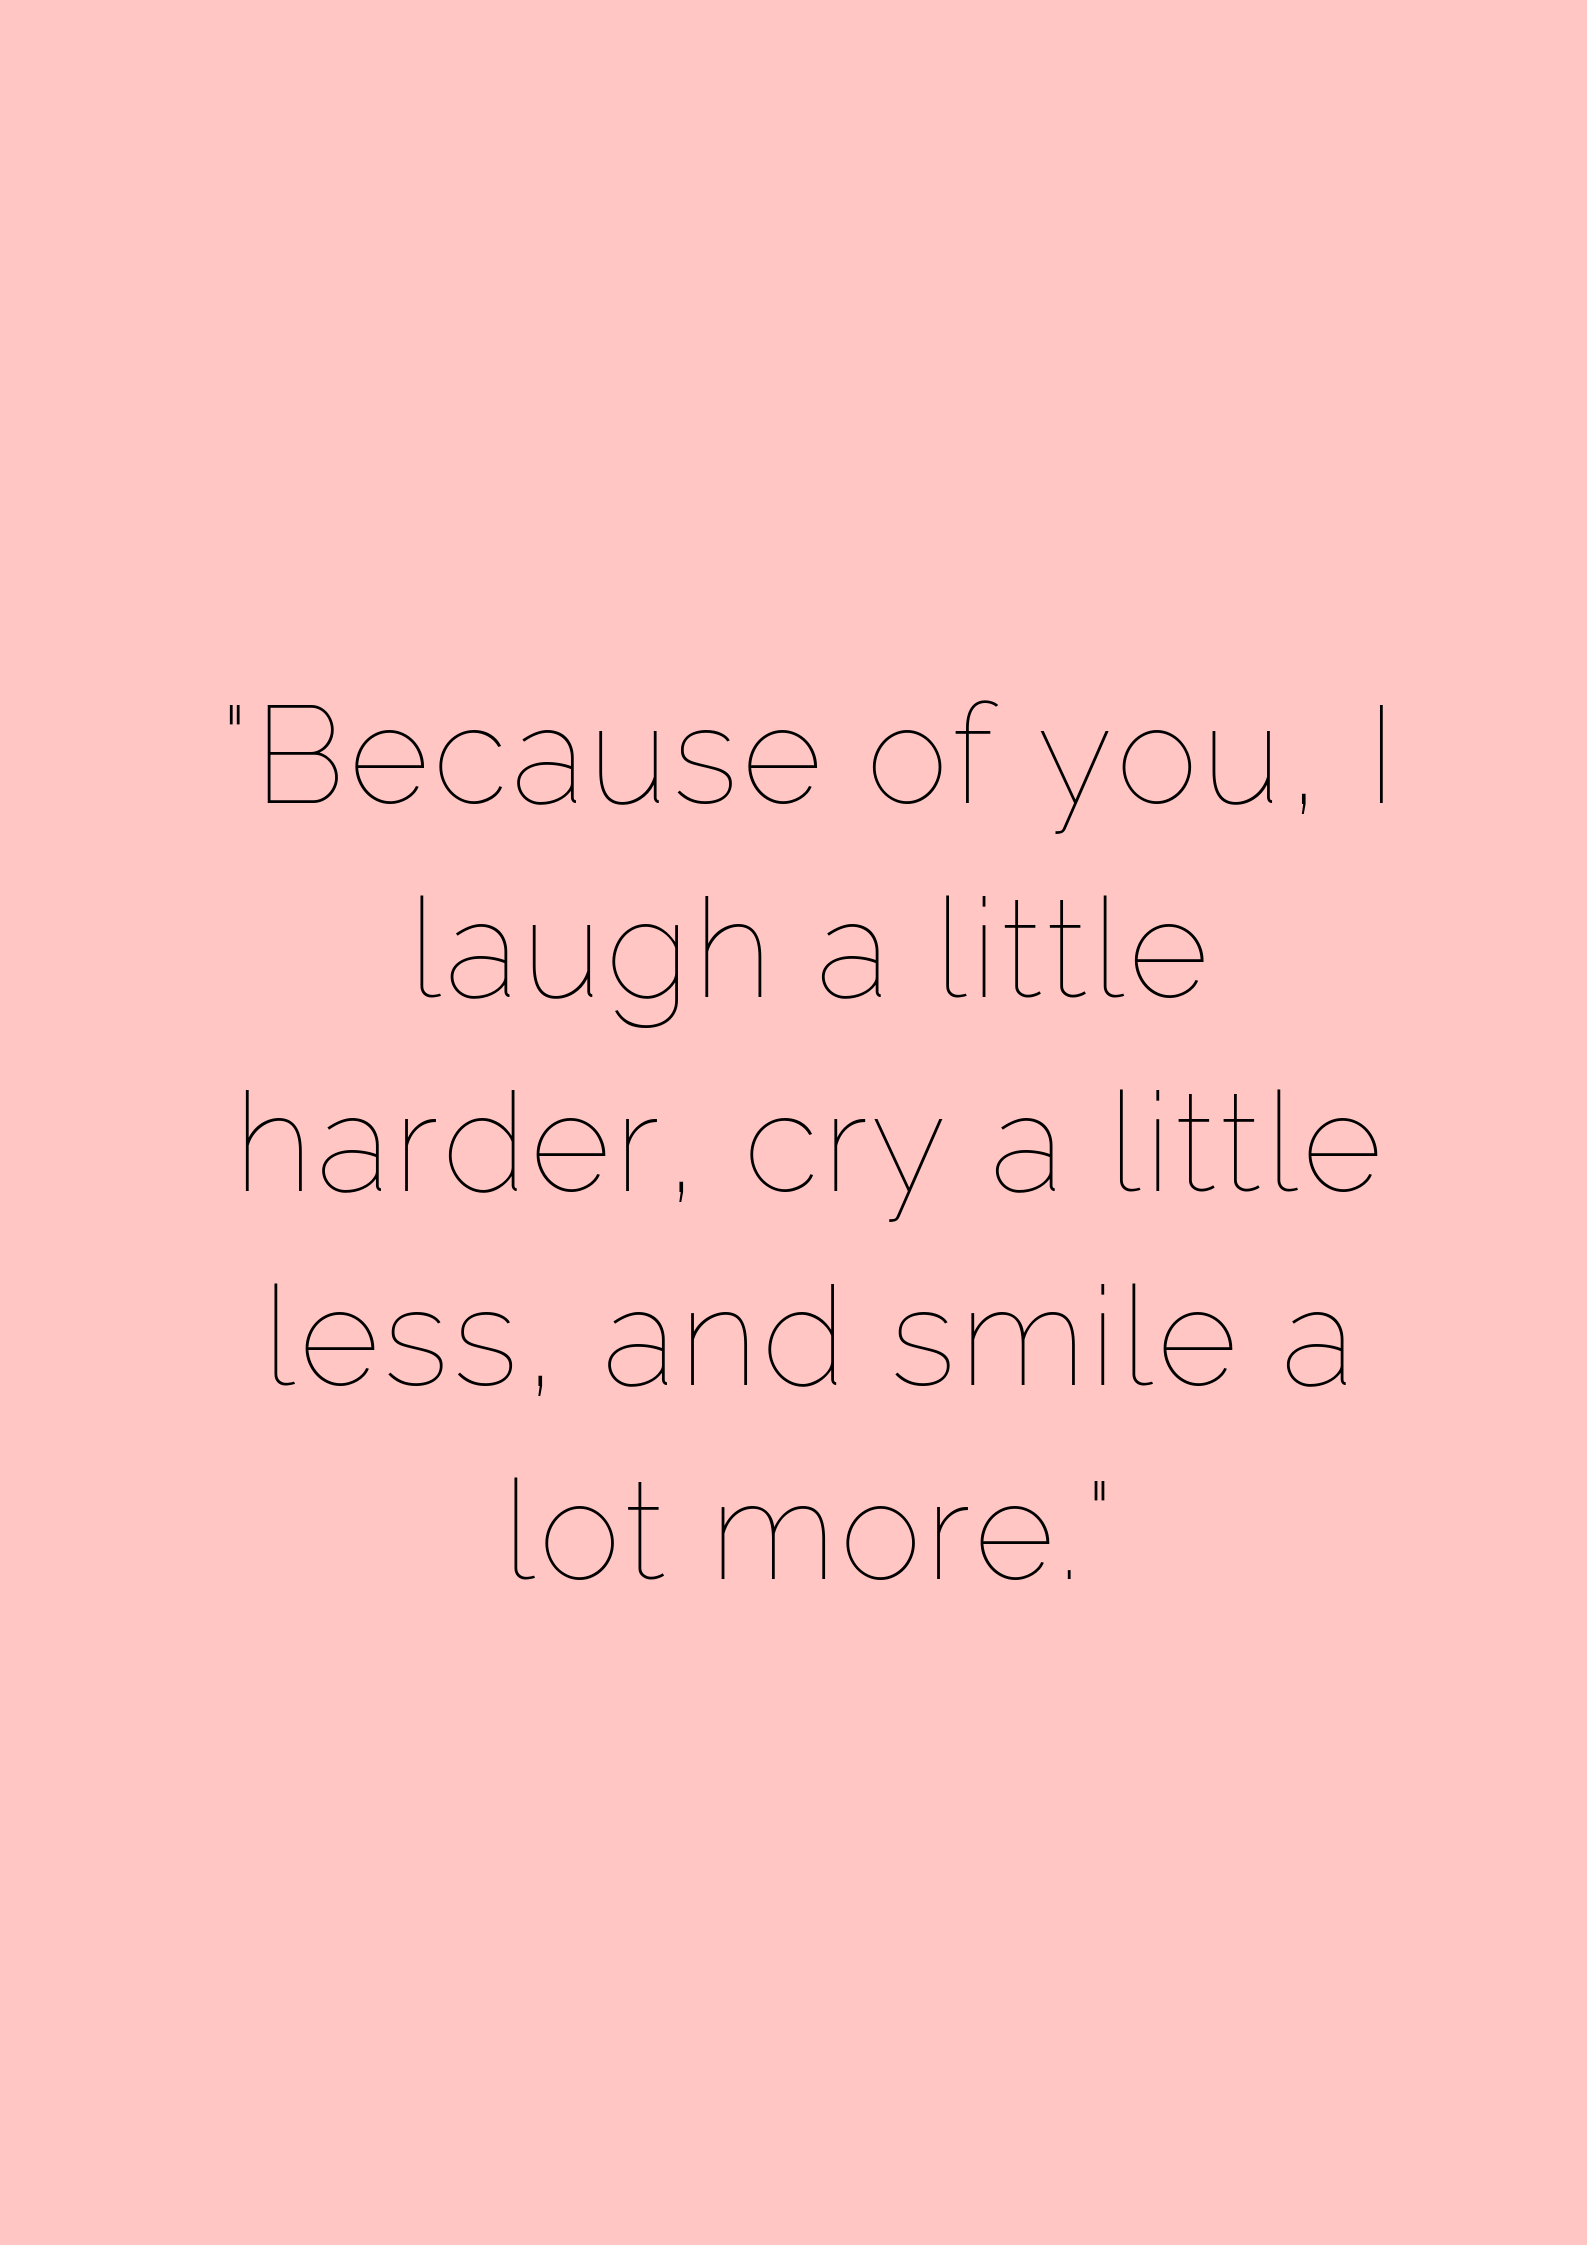 160 Quirky Love Quotes Friend Love Quotes Stress Quotes Funny Calming Quotes Stress